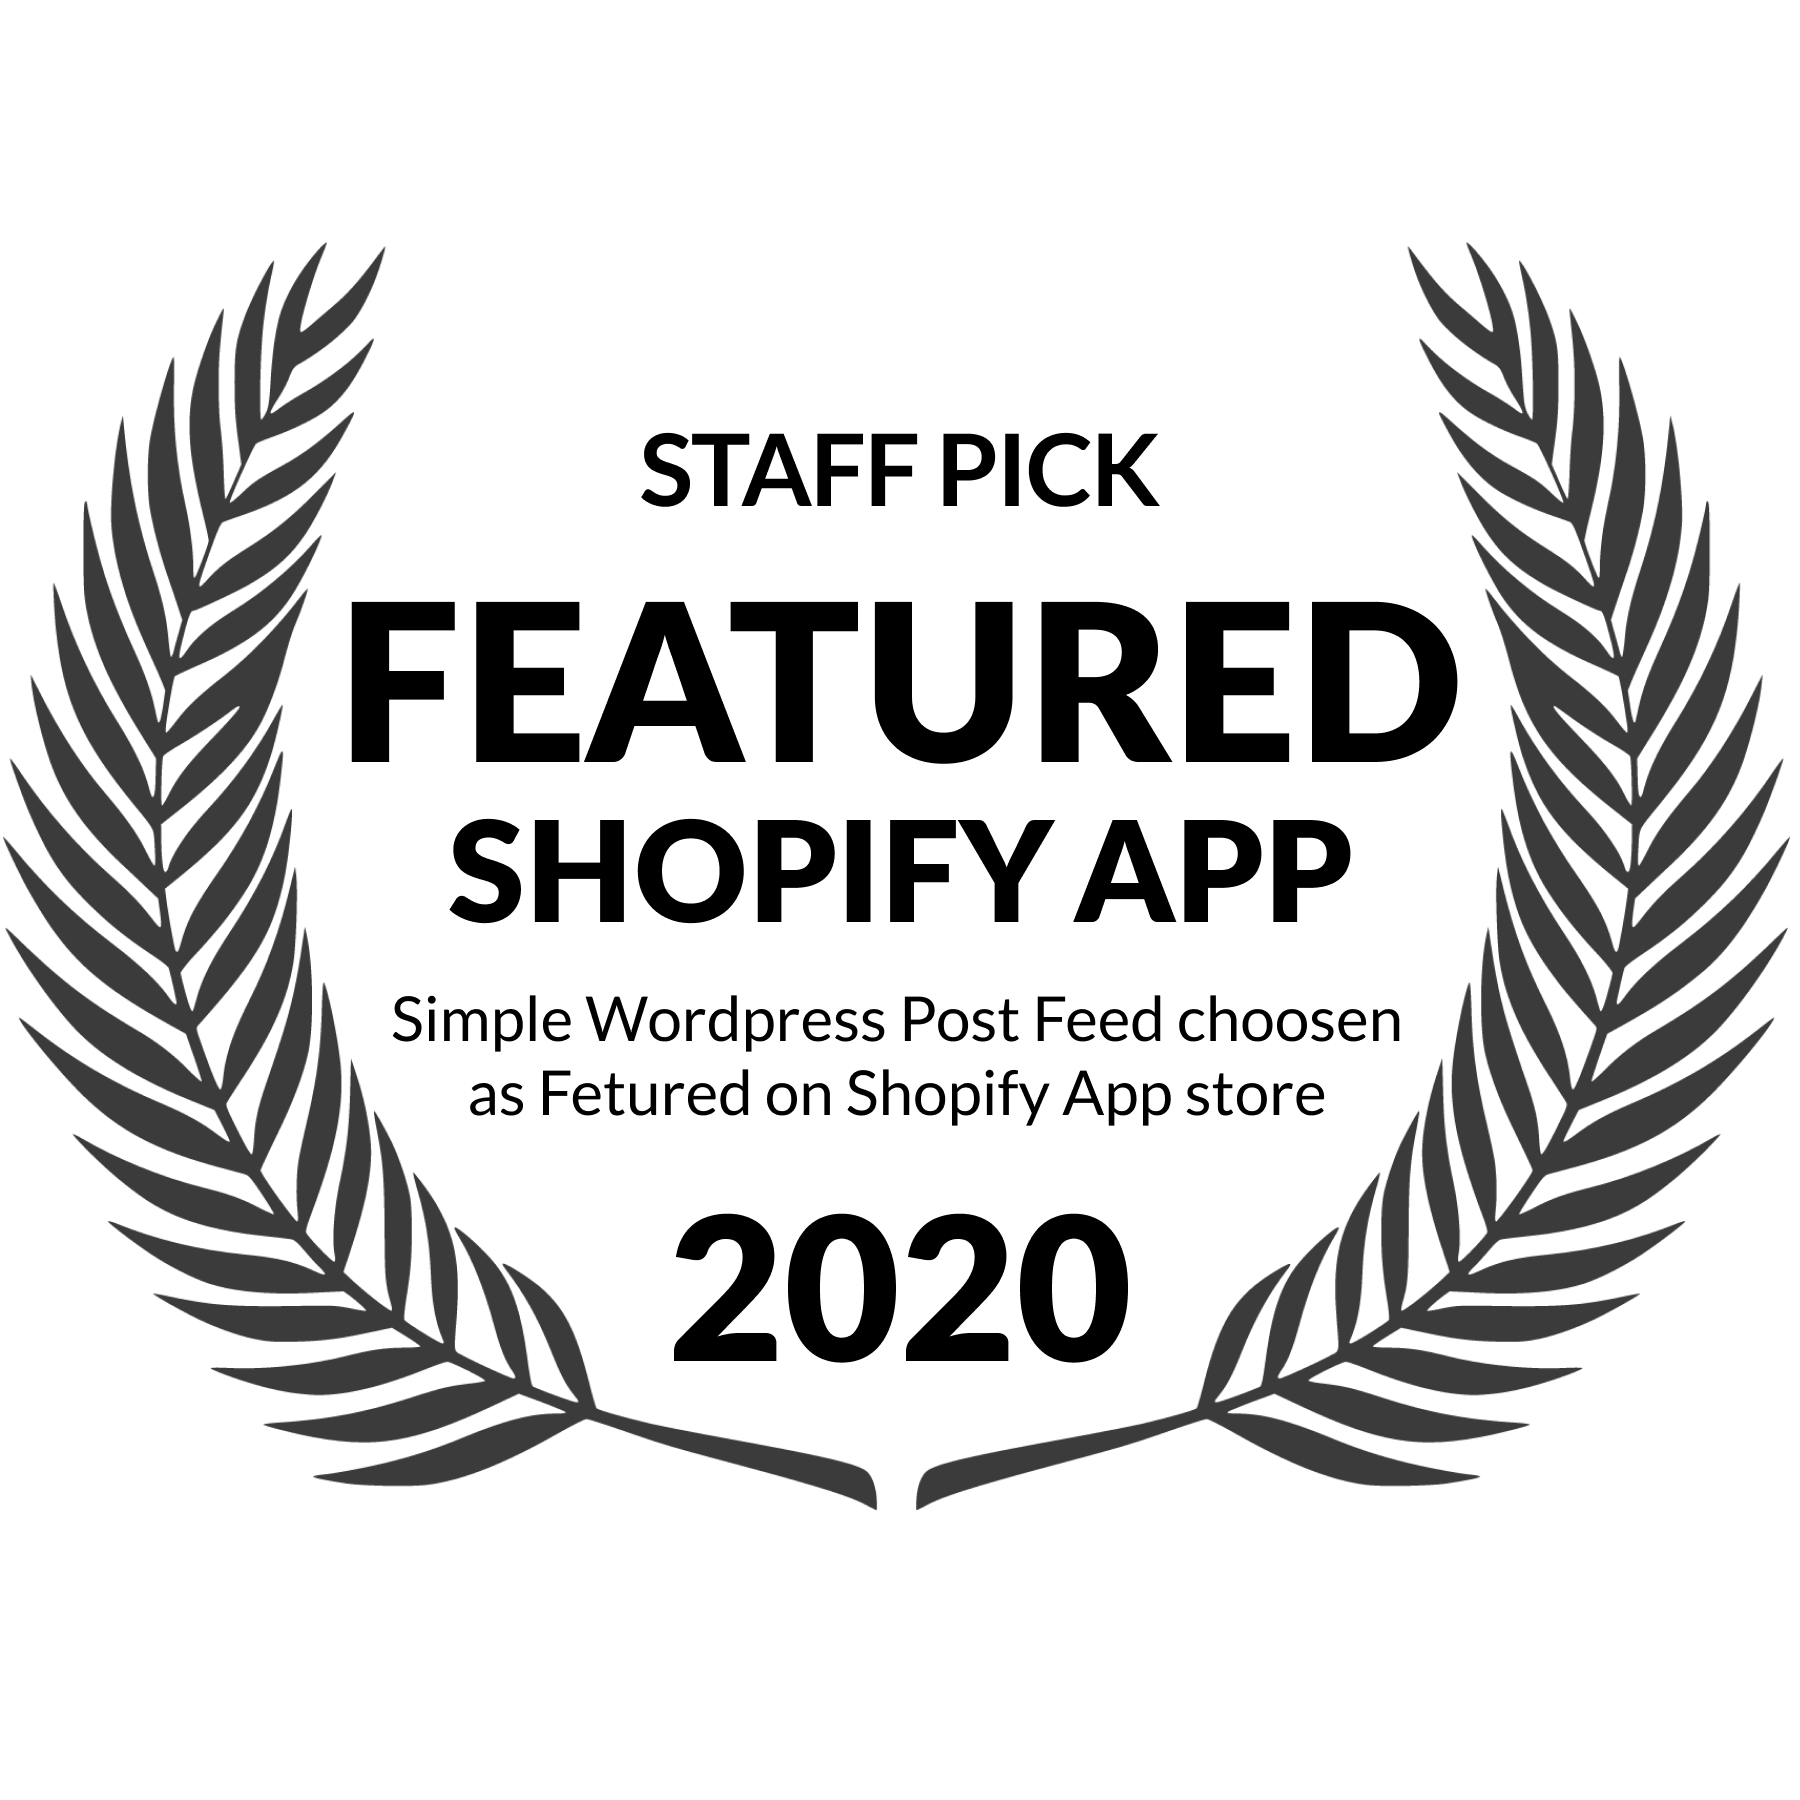 Shopify picked app featured